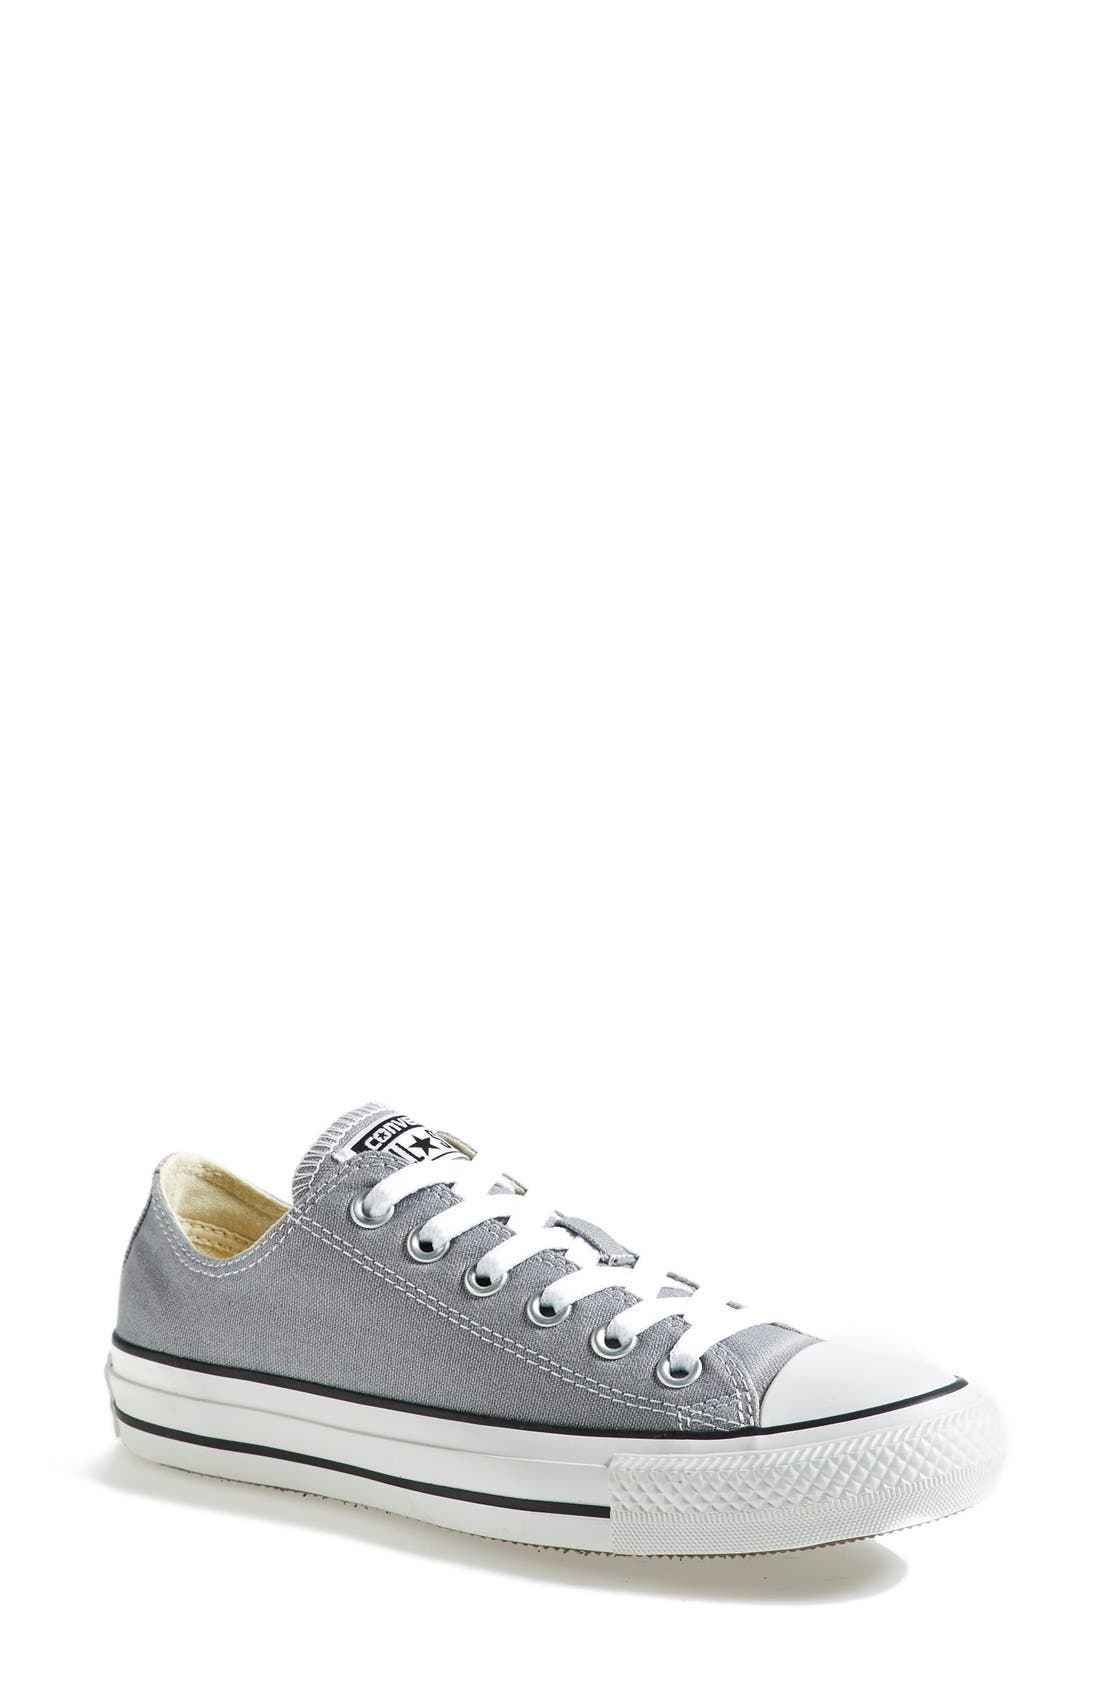 Main Image - Converse Chuck Taylor® All Star® Sneaker (Women)